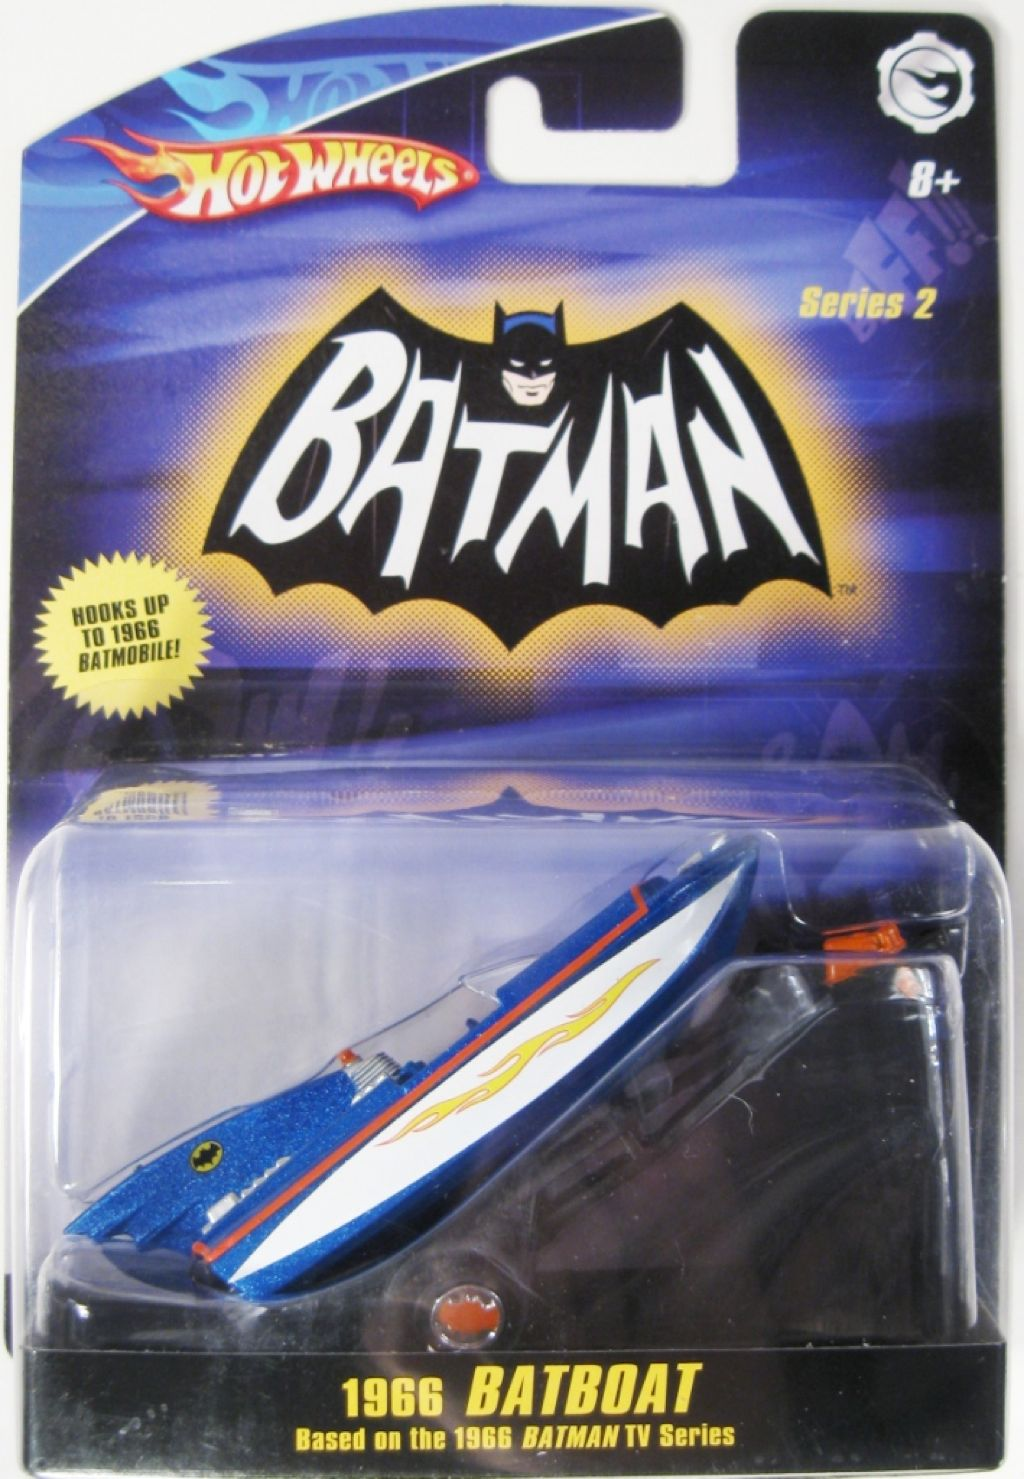 1966 TV Series Batboat™ Toy Car, Die Cast, And Hot Wheels - N8016 (2009) back image (back cover, second image)